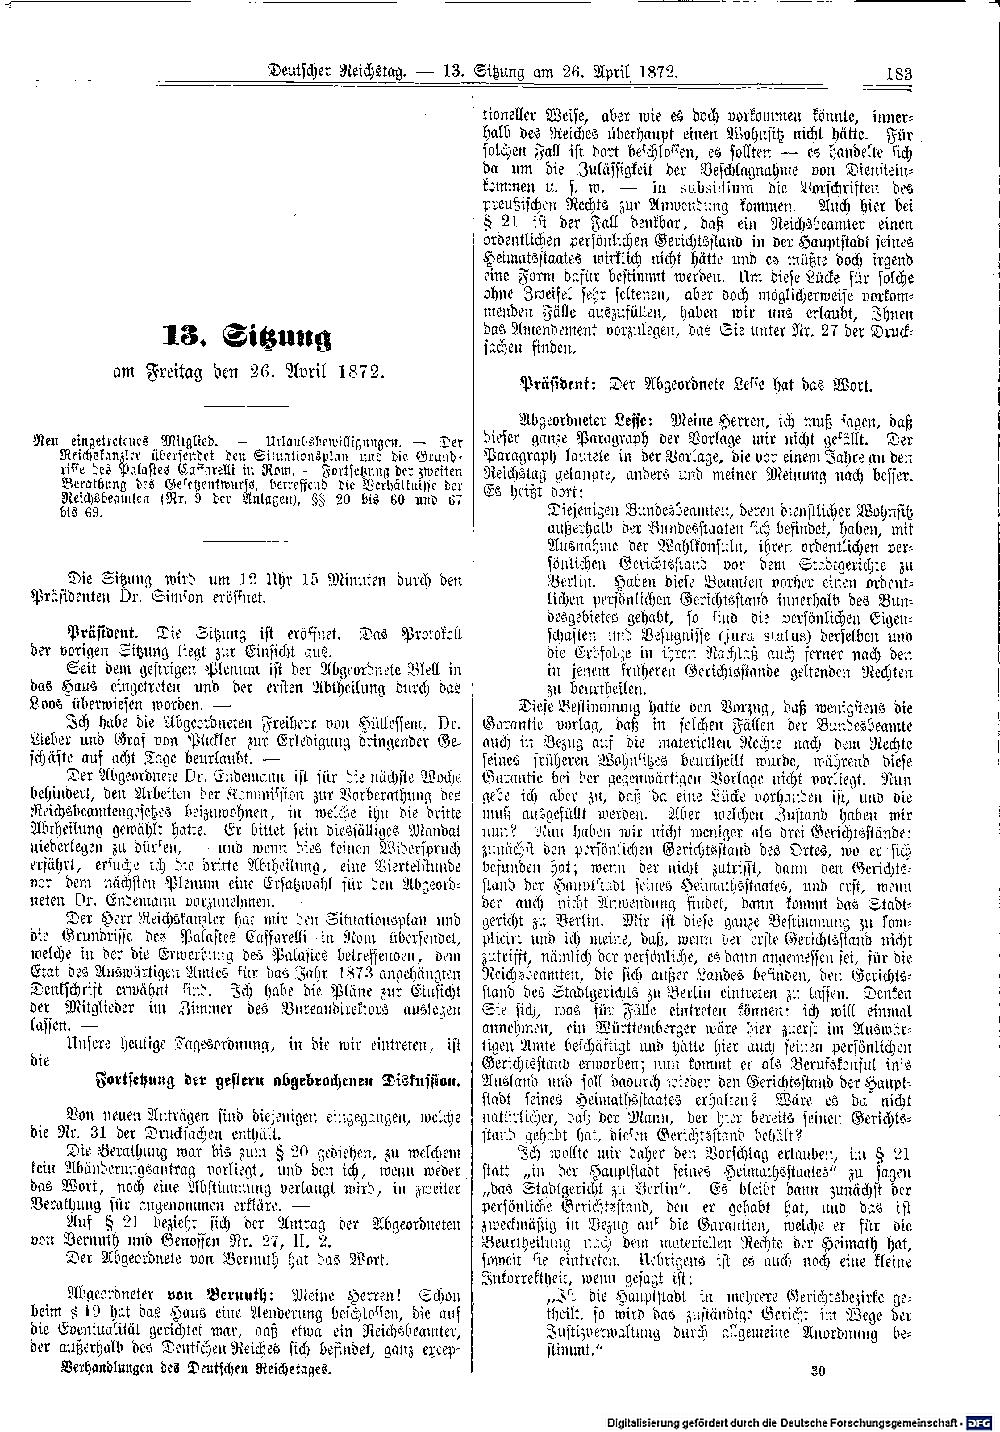 Scan of page 183